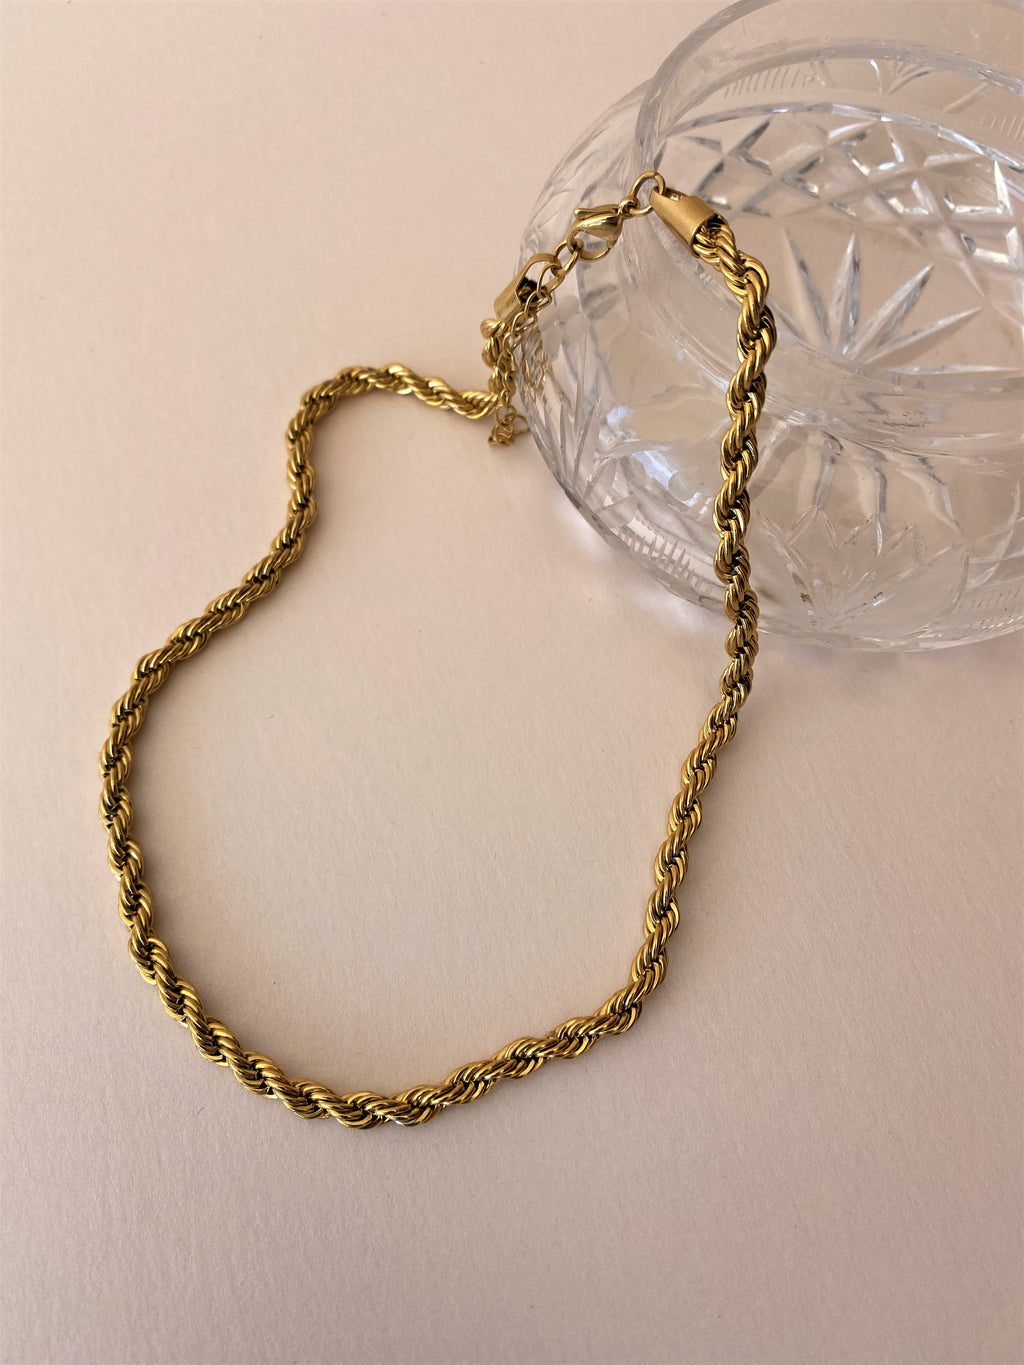 THE ANNIE GOLD-PLATED TWISTED CHOKER